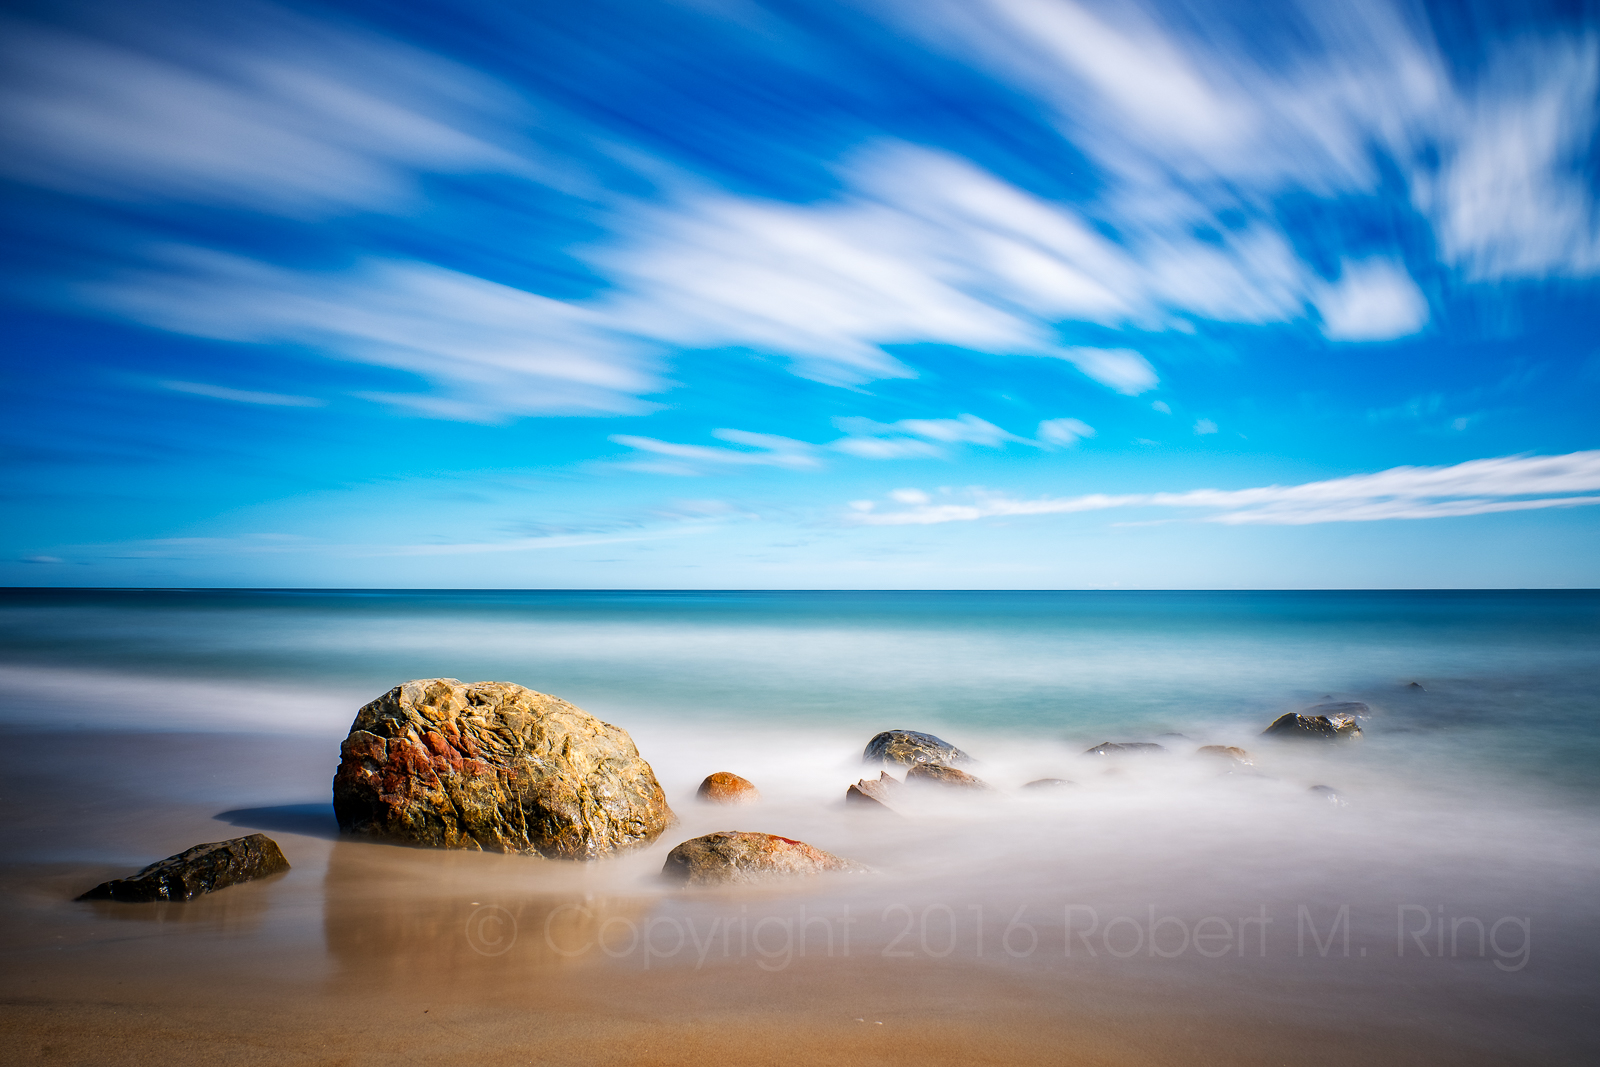 Three minutes....Using a 15 stop ND filter in bright sunlight at Sandy Point State Reservation on the southern tip of Plum Island...